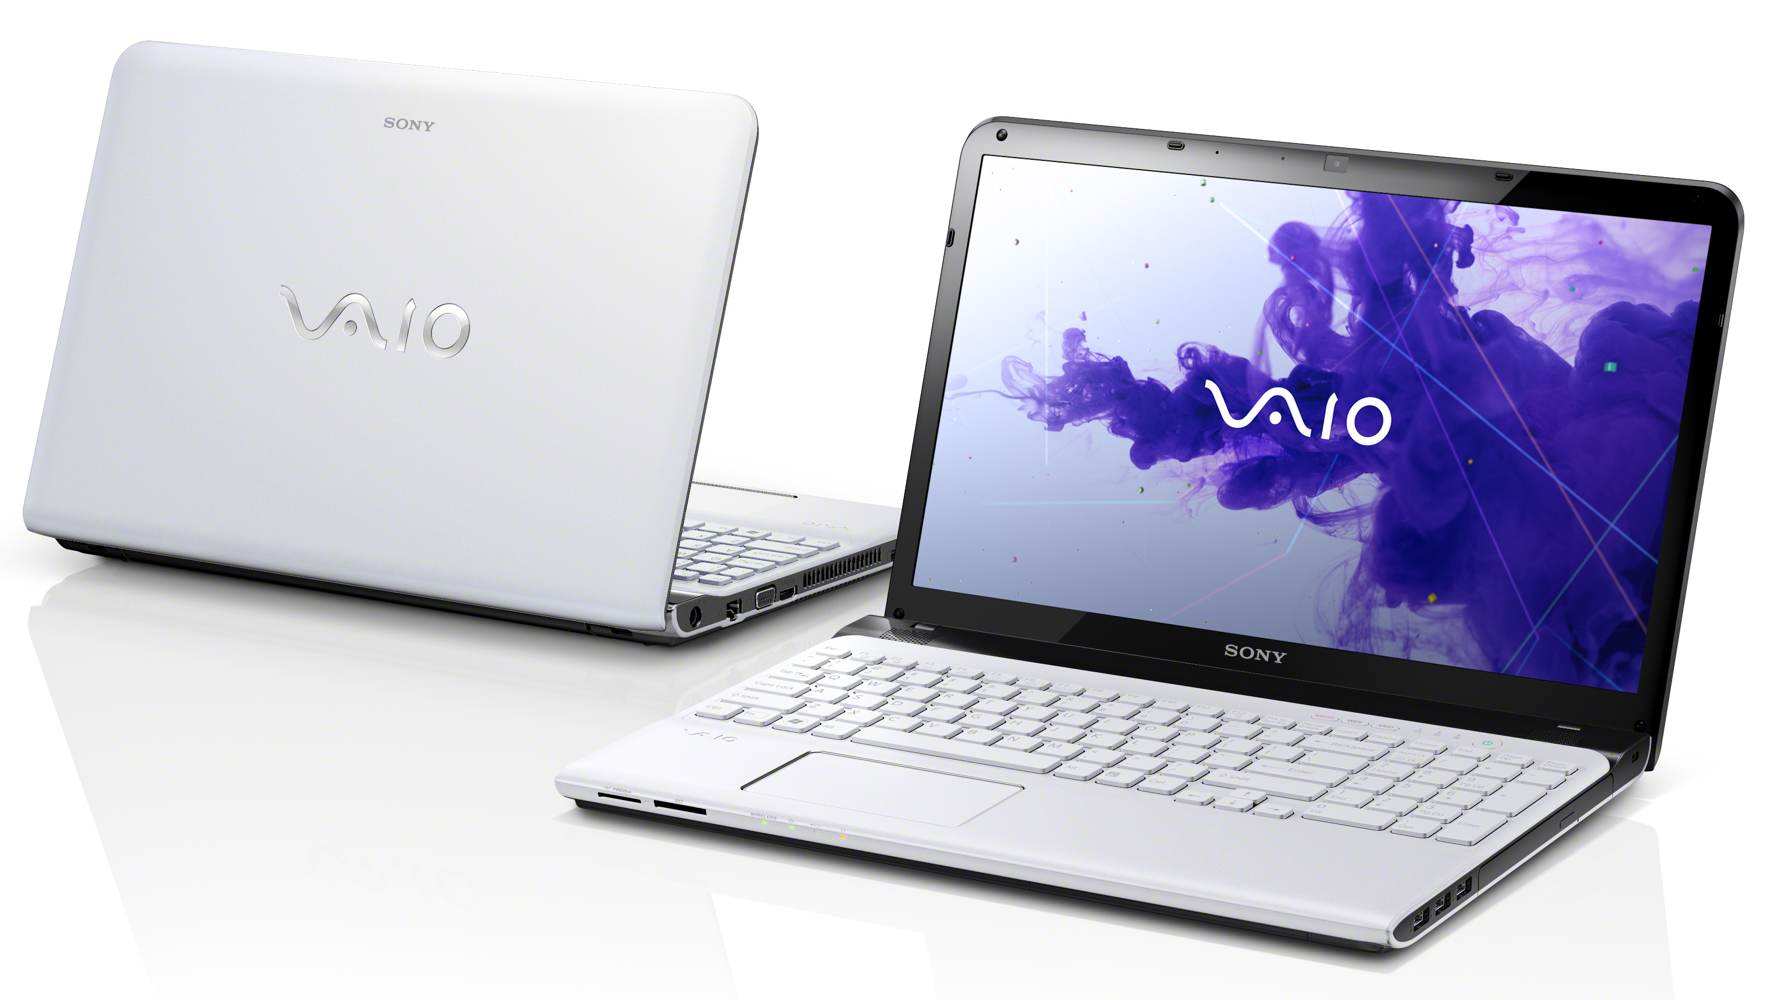 Amazon.com: Sony VAIO E15 Series SVE15126CXW 15.5-Inch Laptop (White